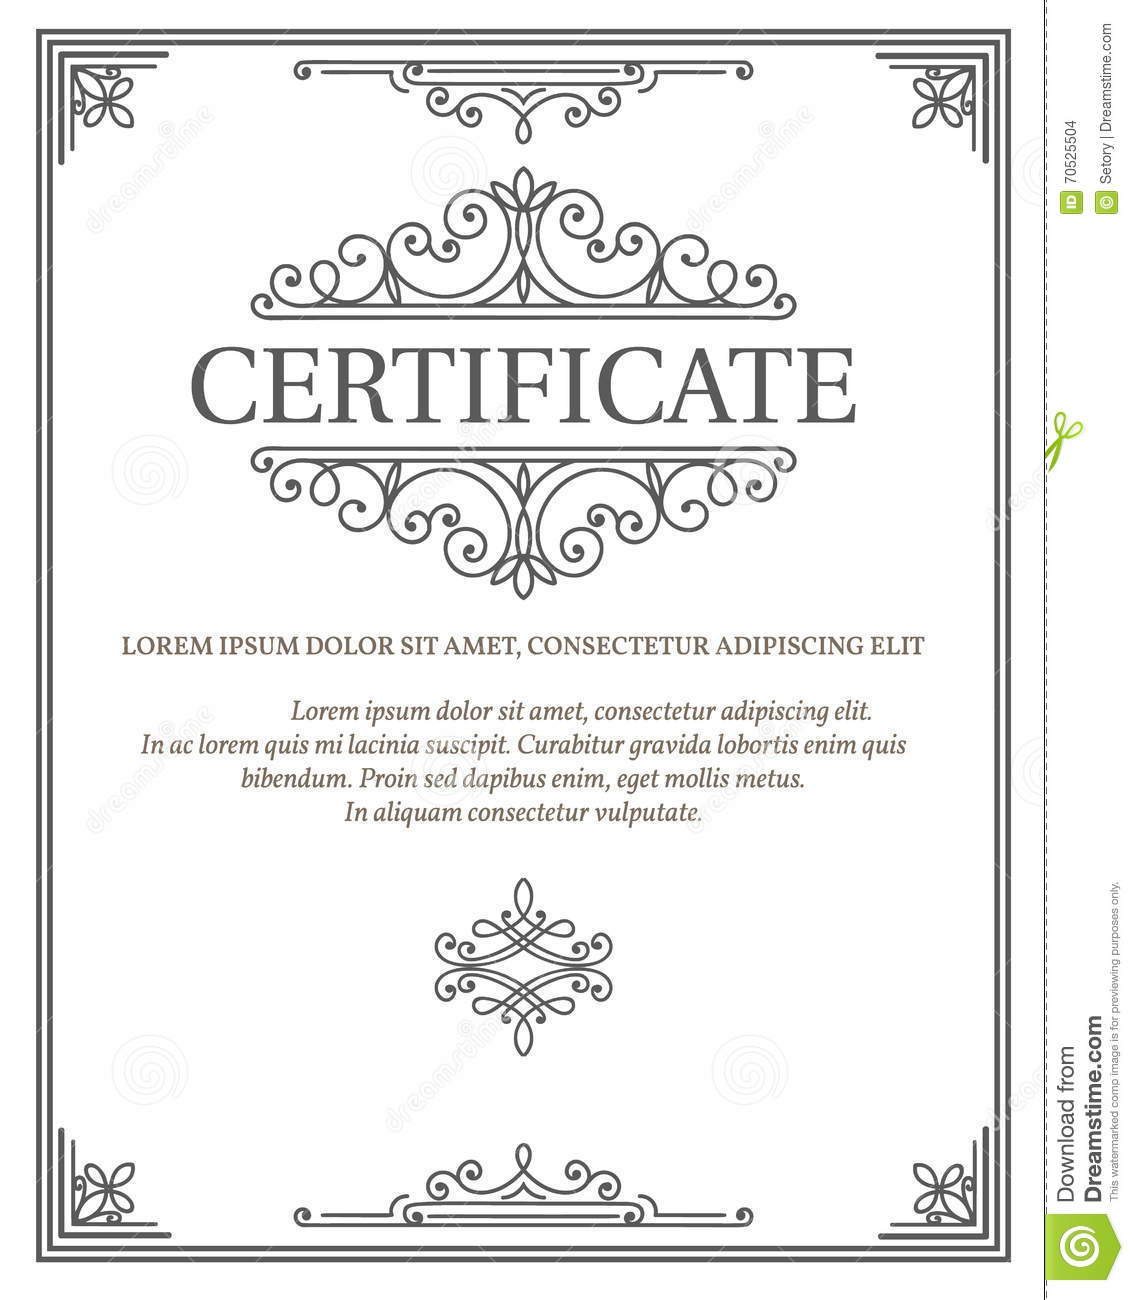 Vertical Certificate Template Diploma Stock Vector Illustration Of